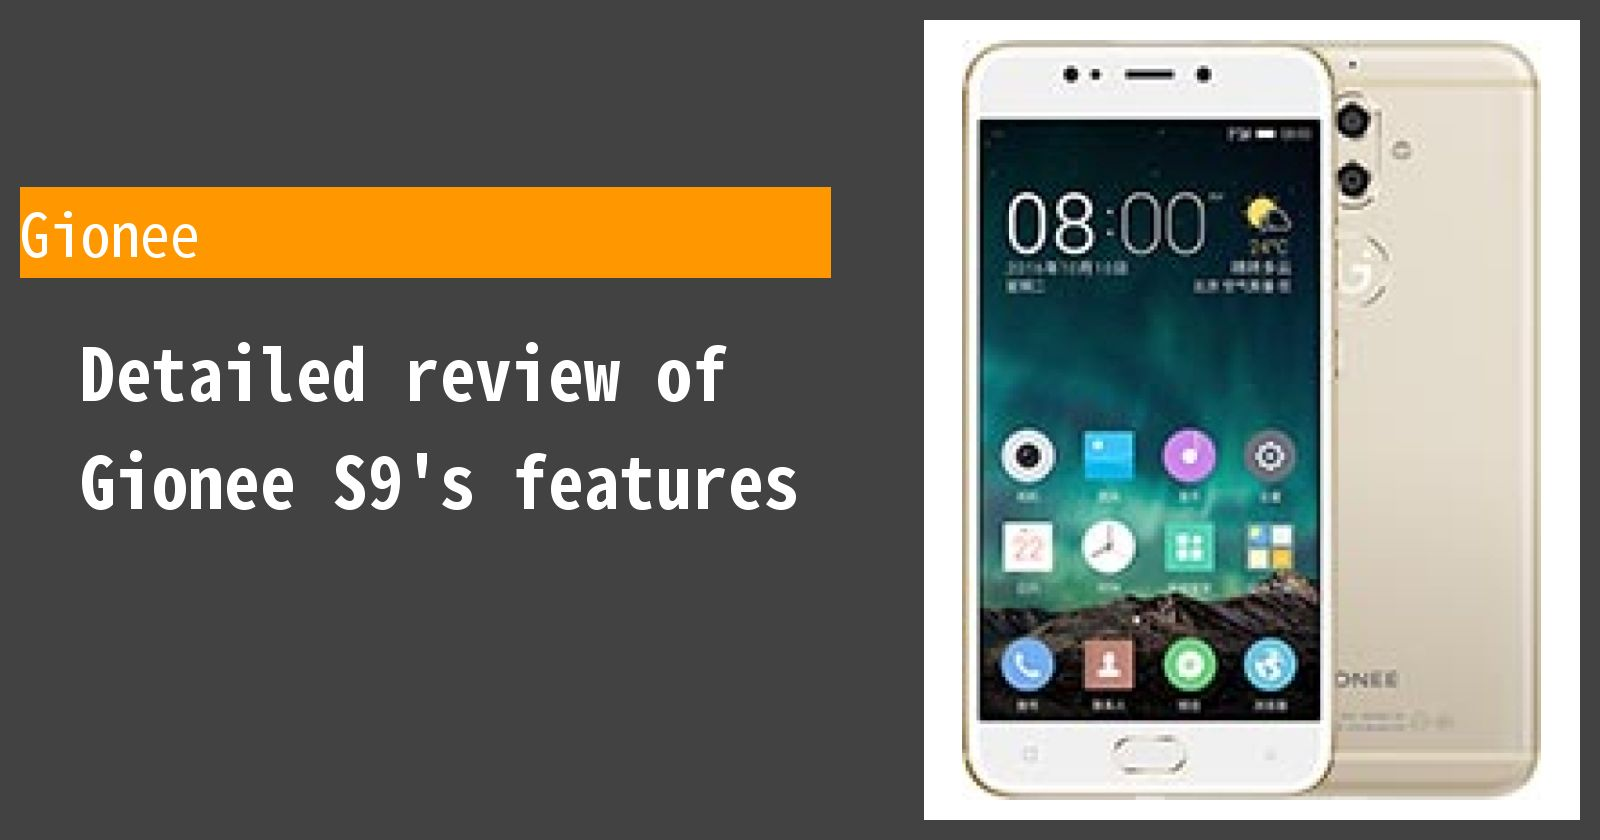 Detailed review of Gionee S9's features